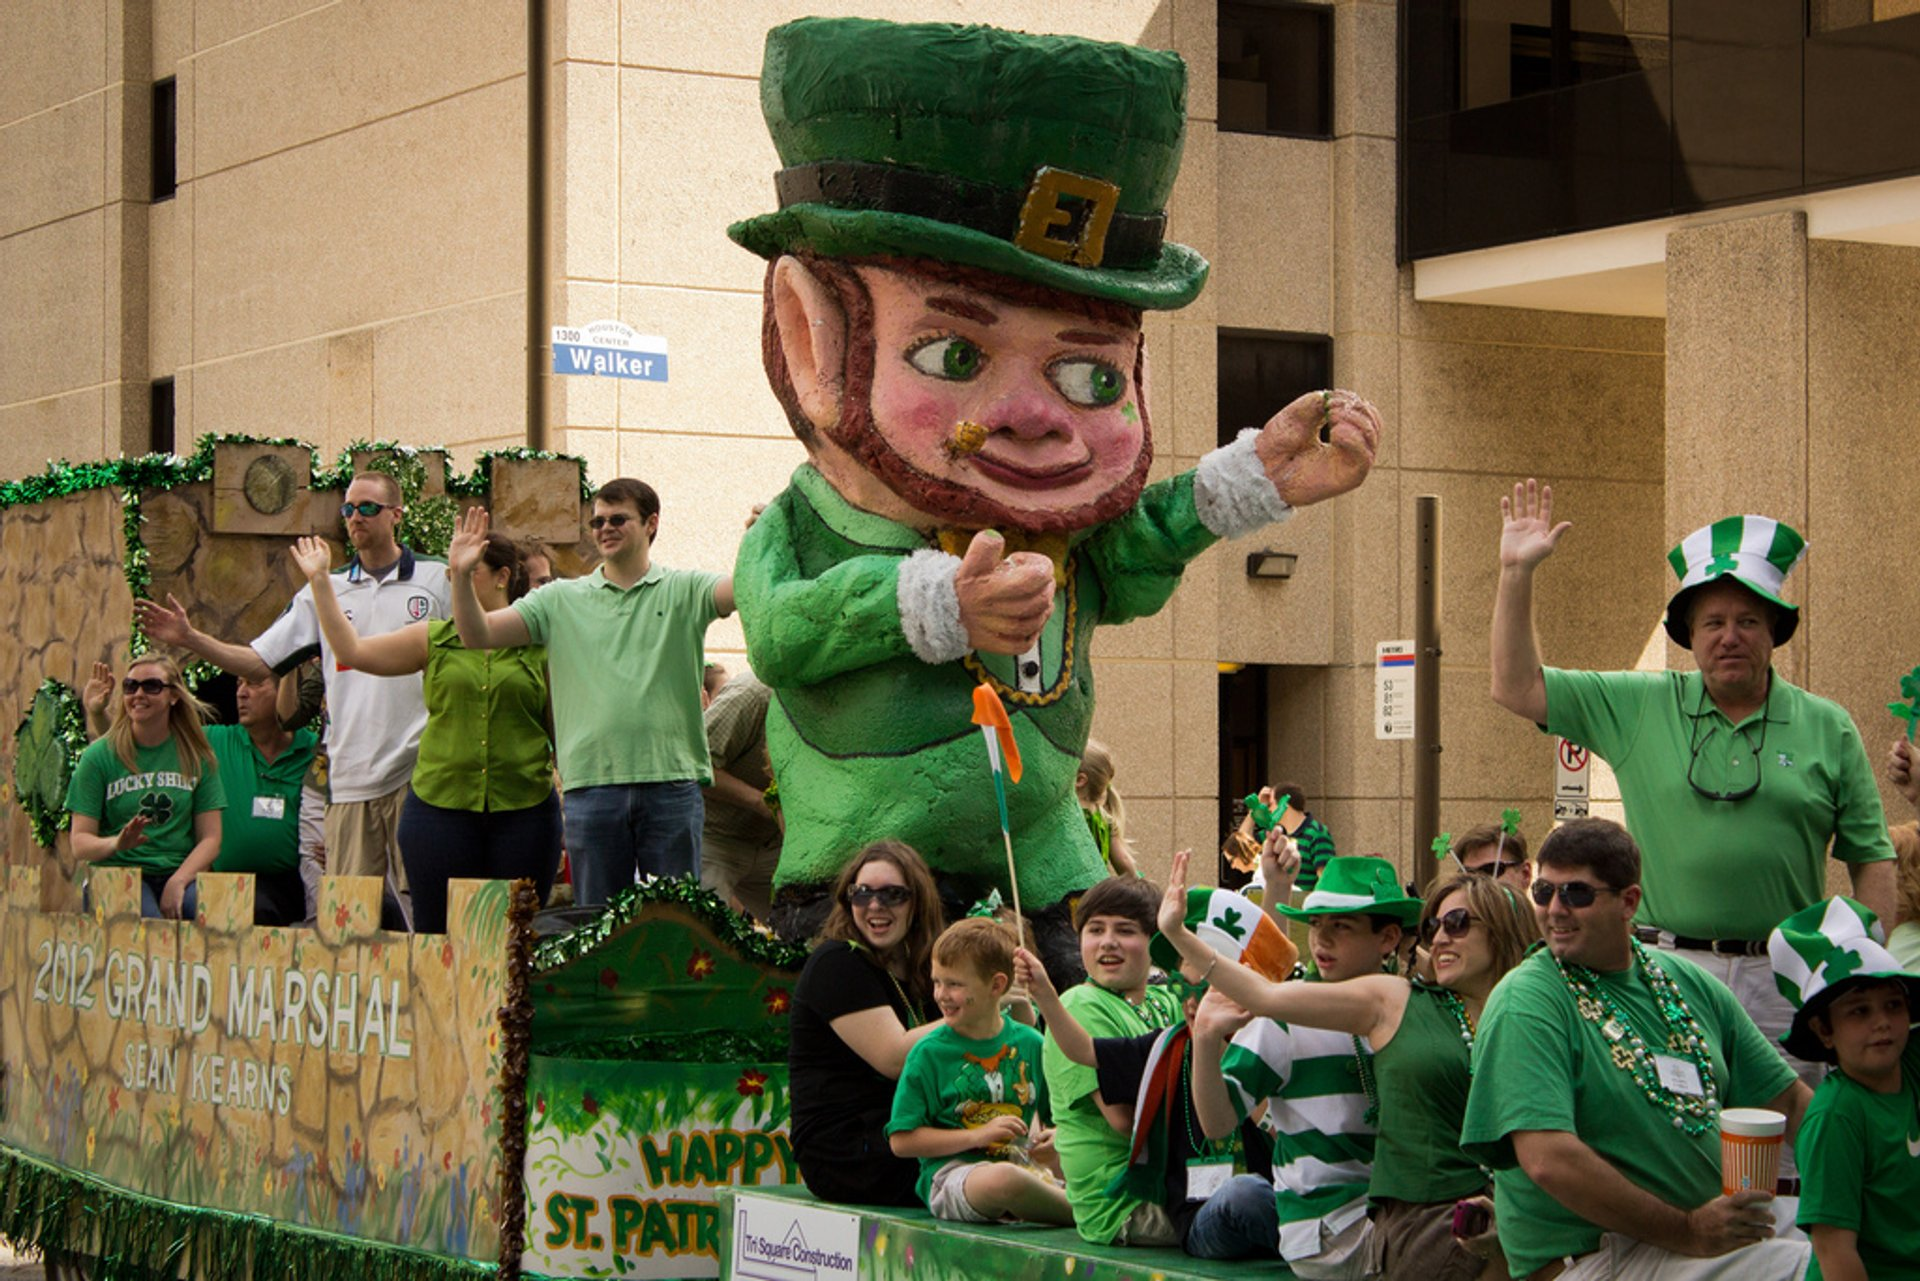 St Patricks Day parade, Downtown Houston 2019